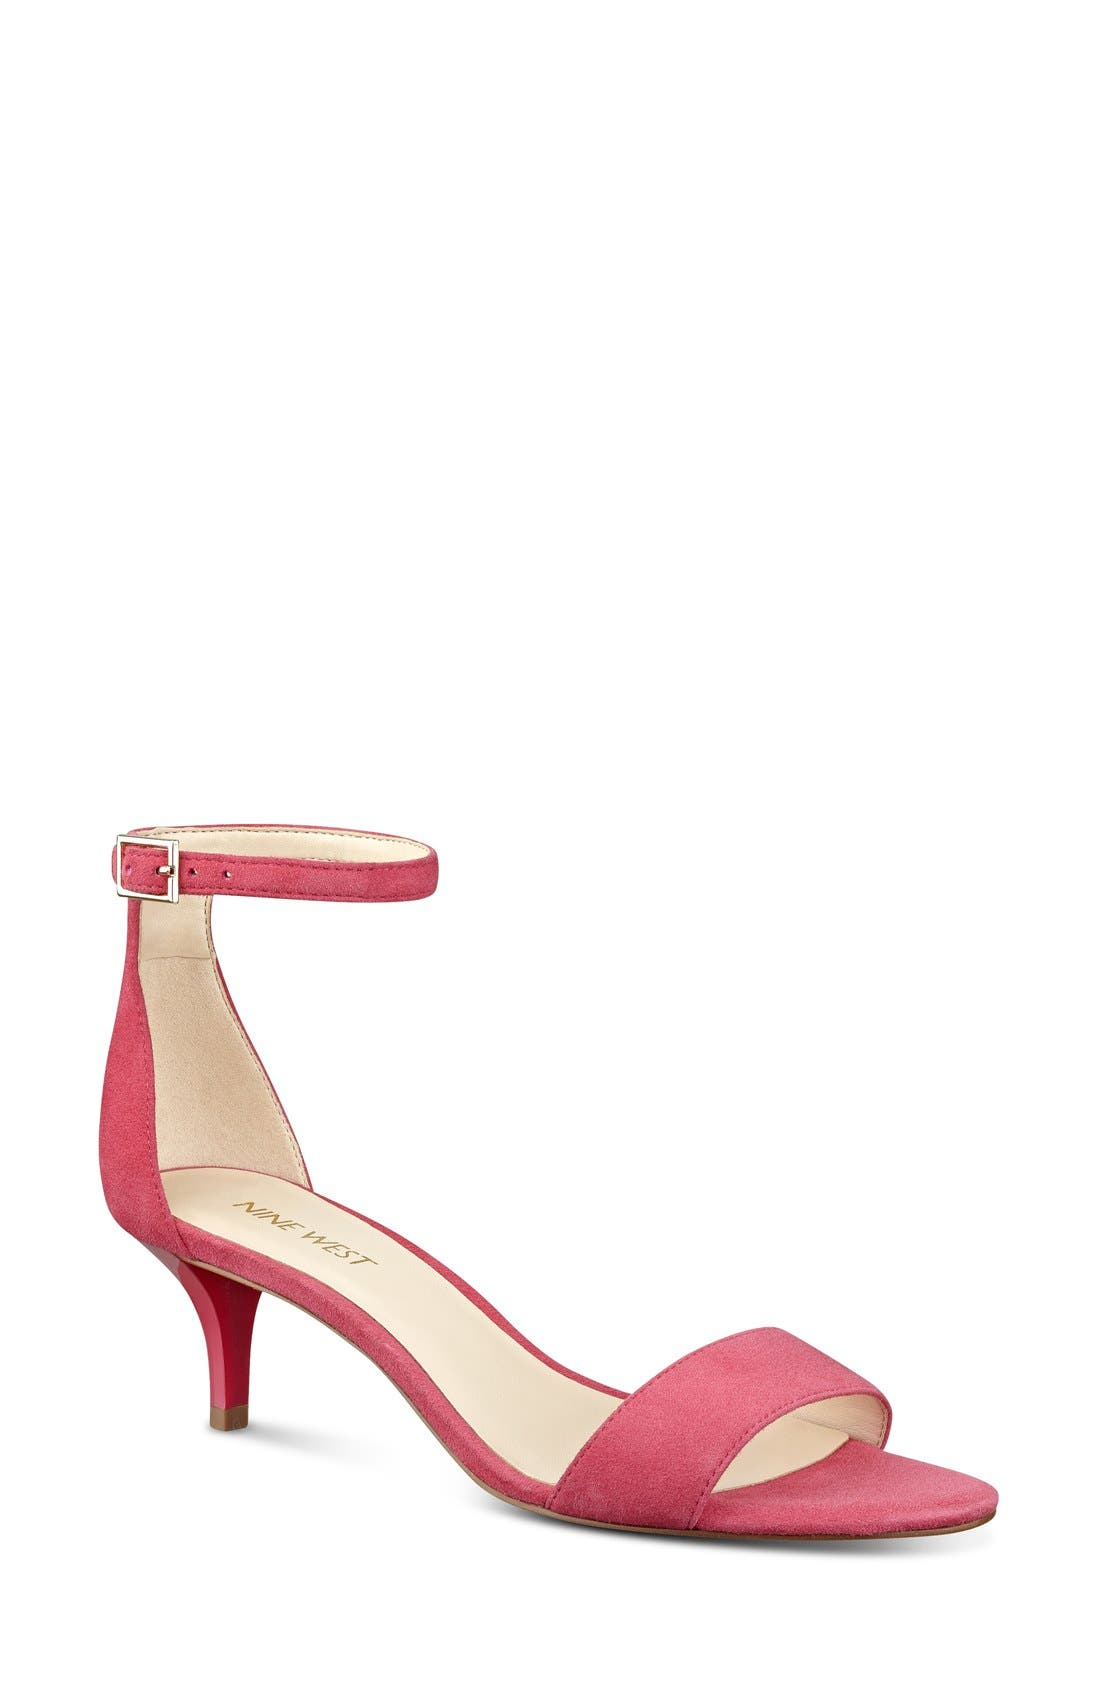 Alternate Image 1 Selected - Nine West 'Leisa' Ankle Strap Sandal (Women)